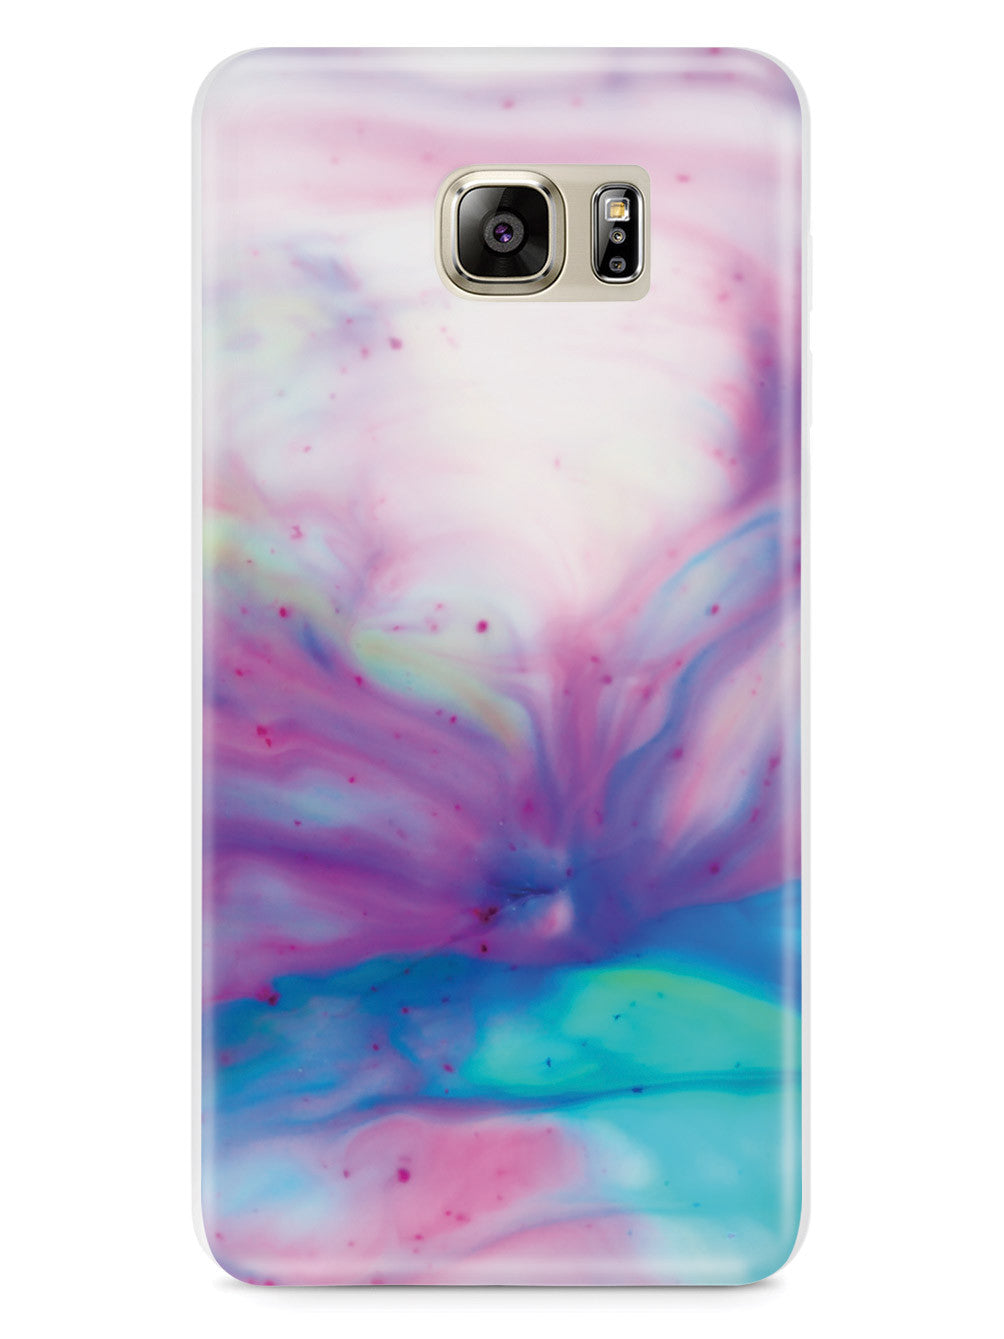 Watercolor Marble Case